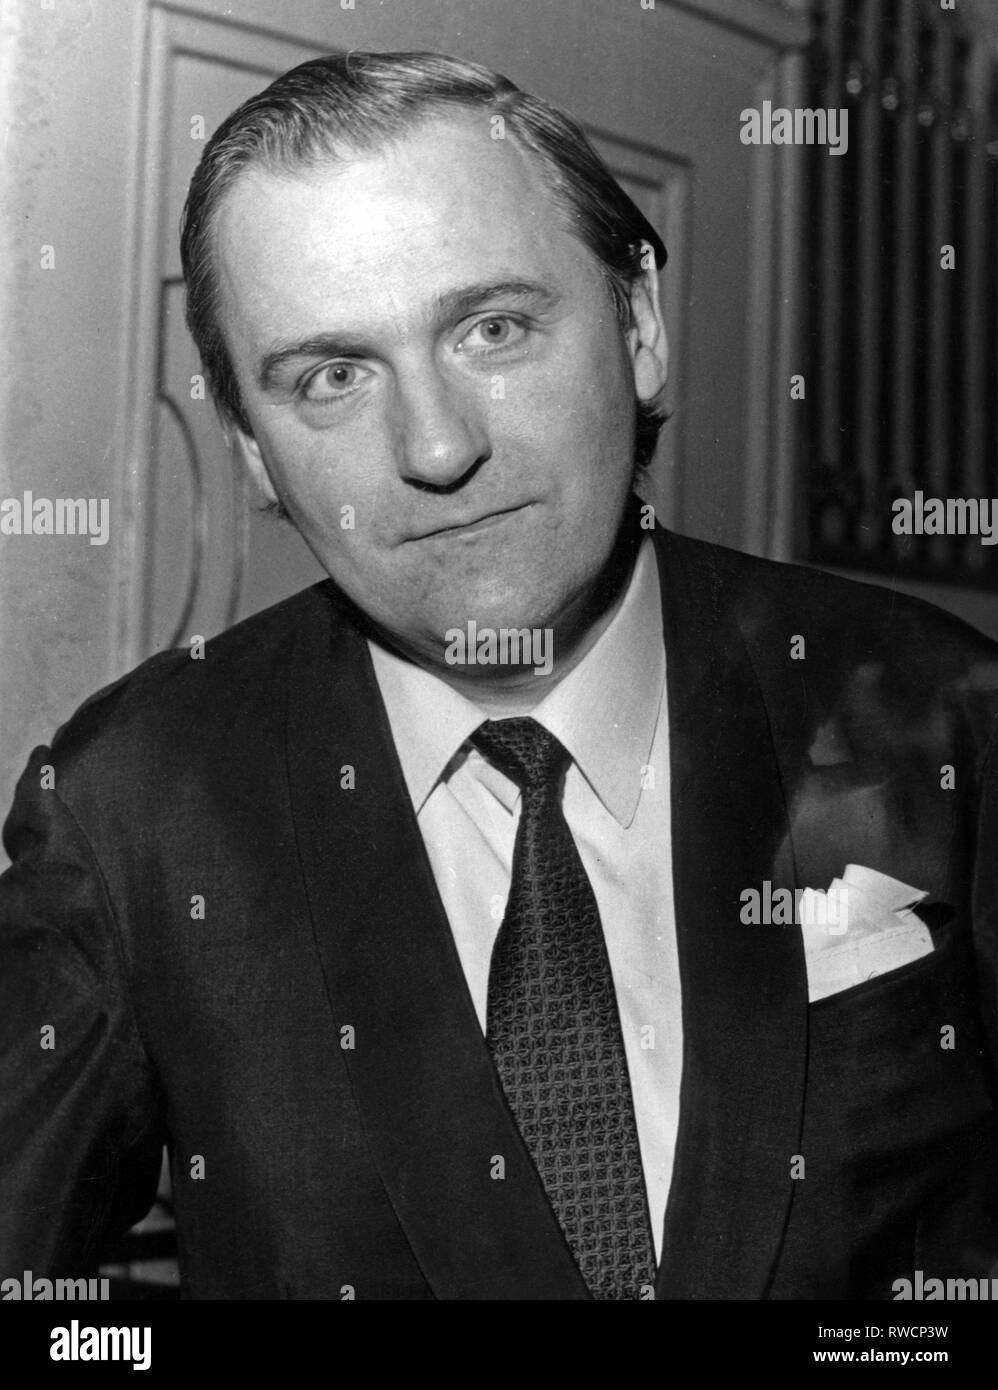 Demus, Jörg, * 2.12.1928, Austrian musician (pianist), 1960s, Additional-Rights-Clearance-Info-Not-Available - Stock Image